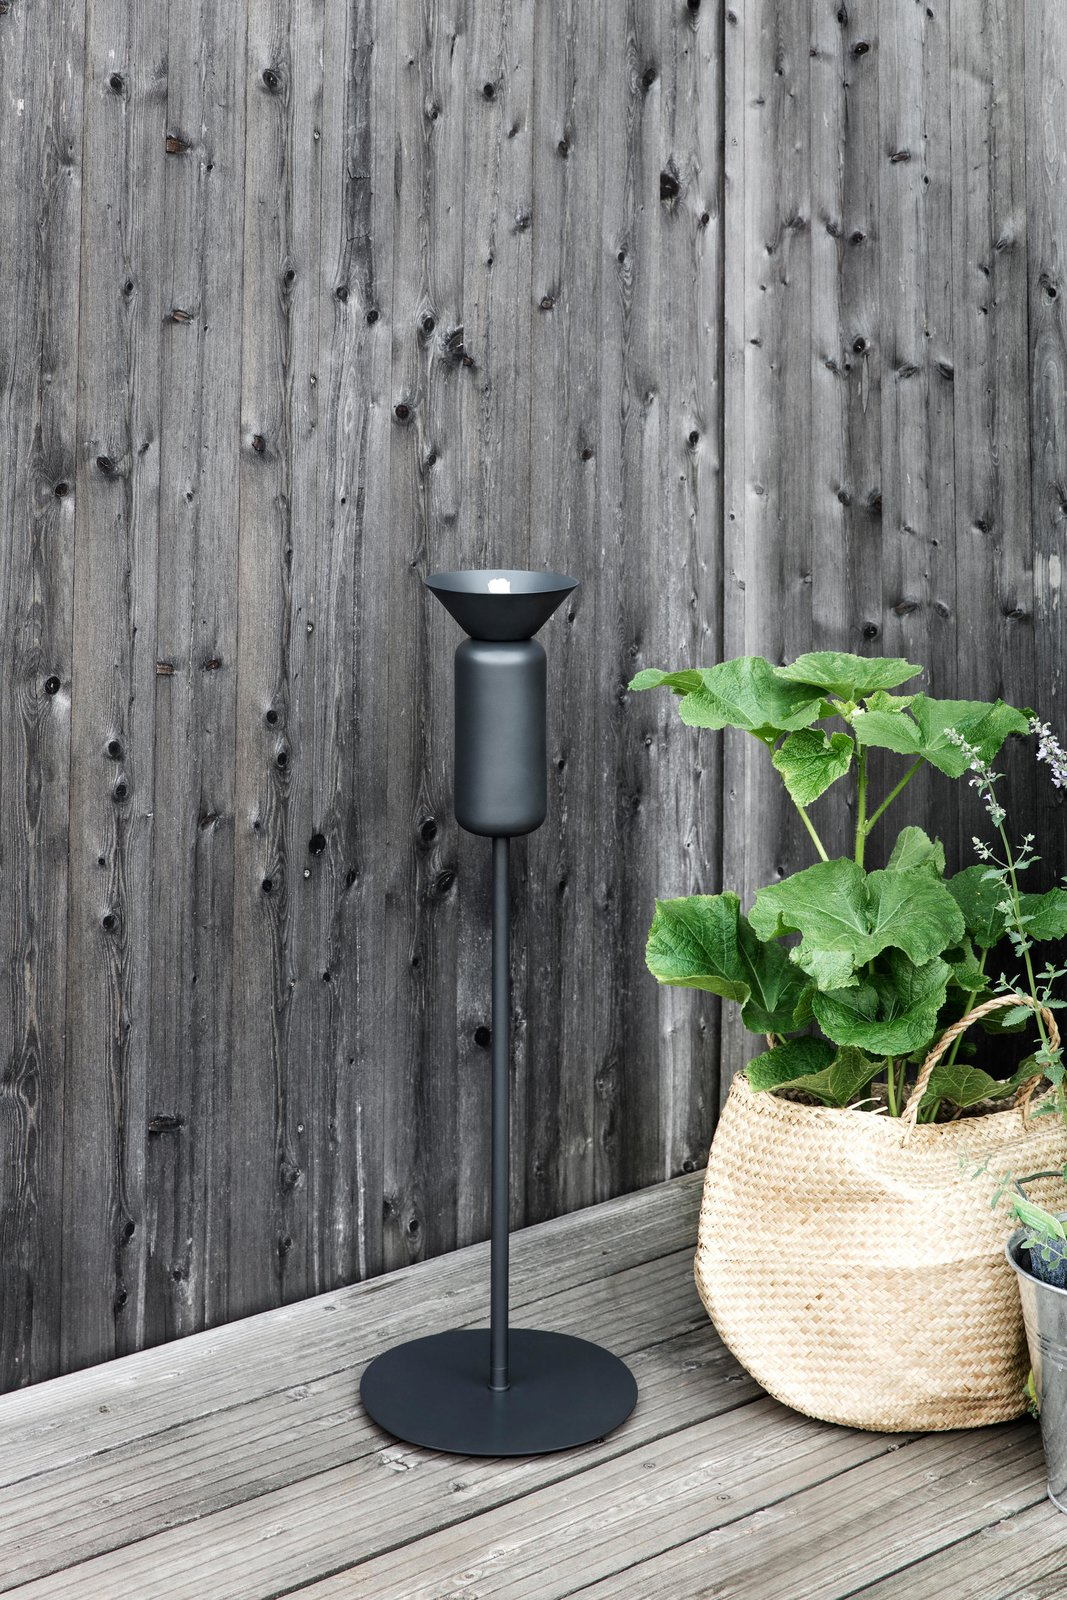 Inspired by a field of tall poppies, these outdoor oil lamps by Northern Lighting were crafted in a shape that captures the flowers' elegant stems and the crowns. 9 Ways to Create the Perfect Outdoor Lighting - Photo 9 of 10